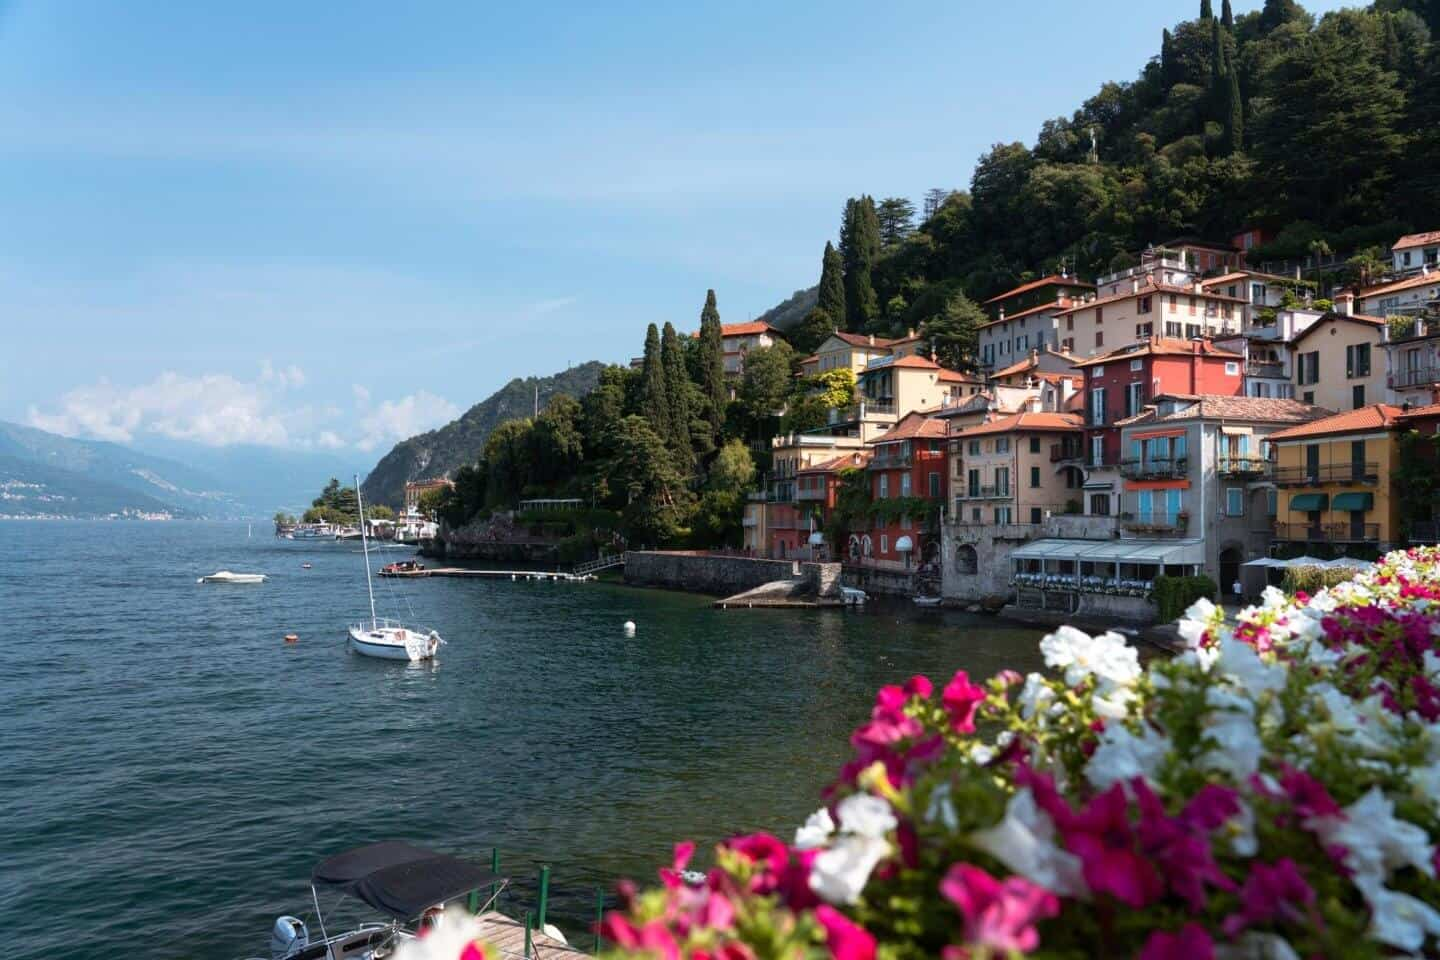 Flowers and colourful houses looking back towards the pier and Passeggiata degli Innamorati (lovers walk) from Riva Grande, Varenna, Lake Como